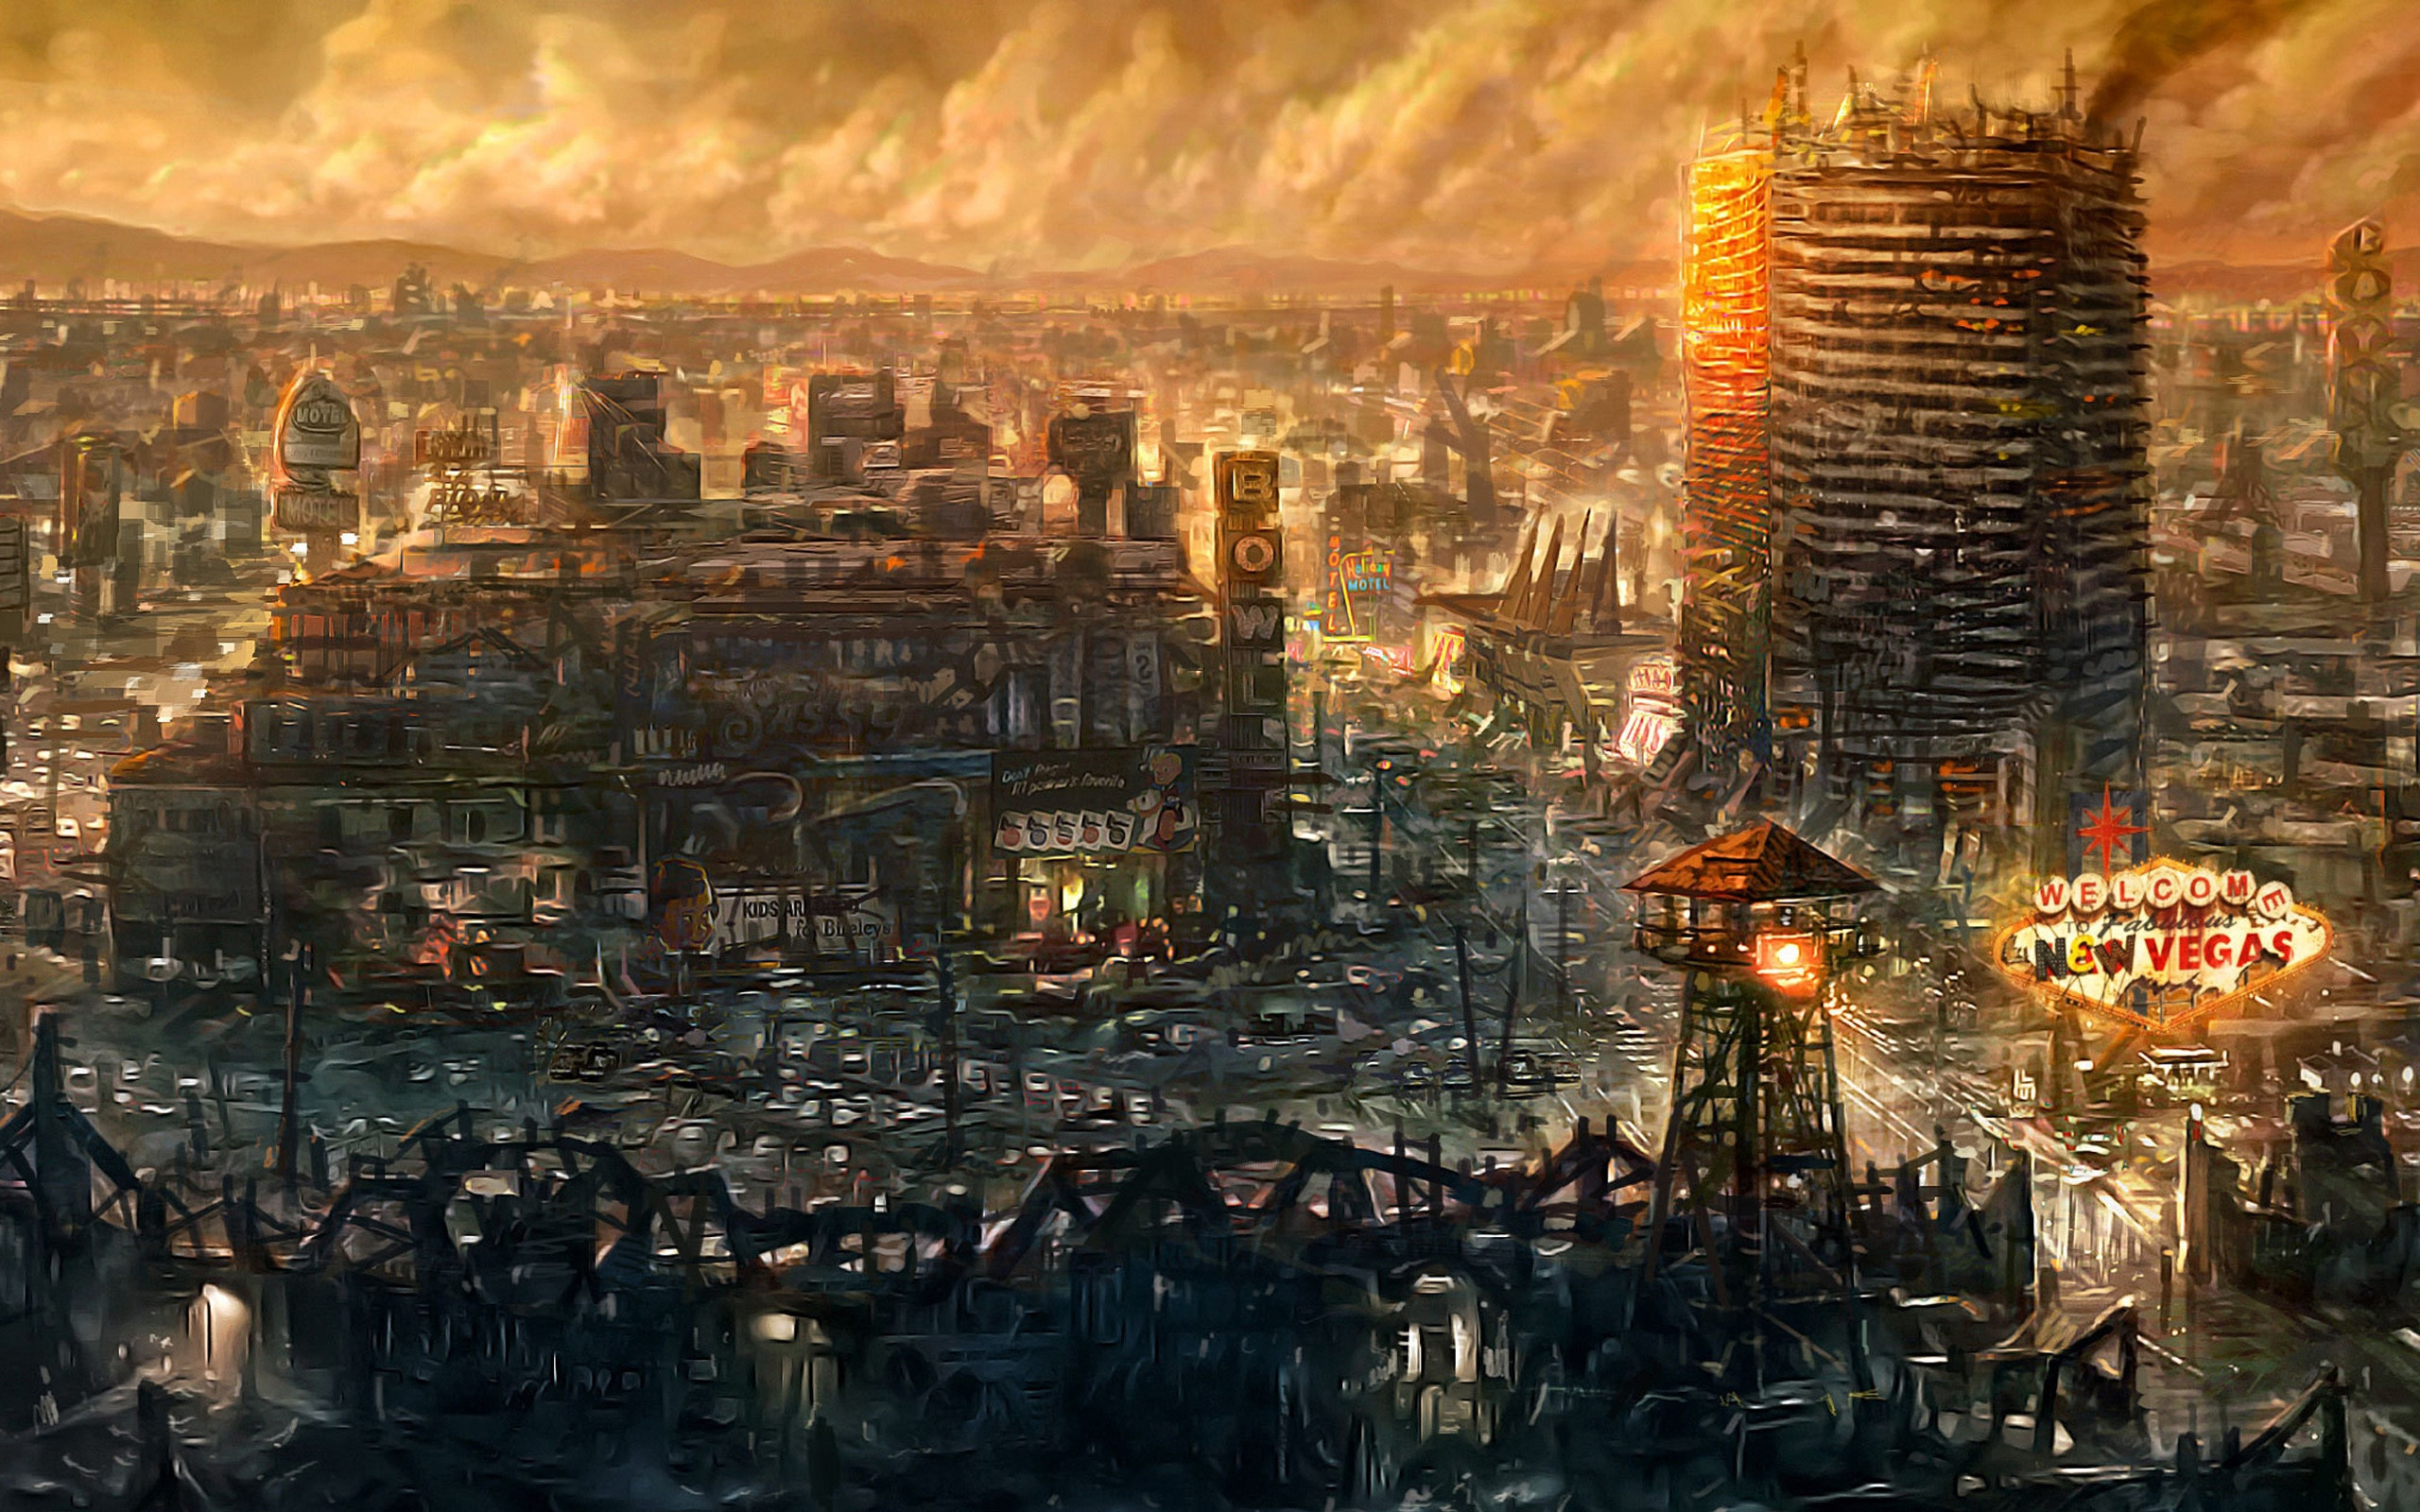 Sci Fi – Post Apocalyptic Wallpaper #TheASGproject